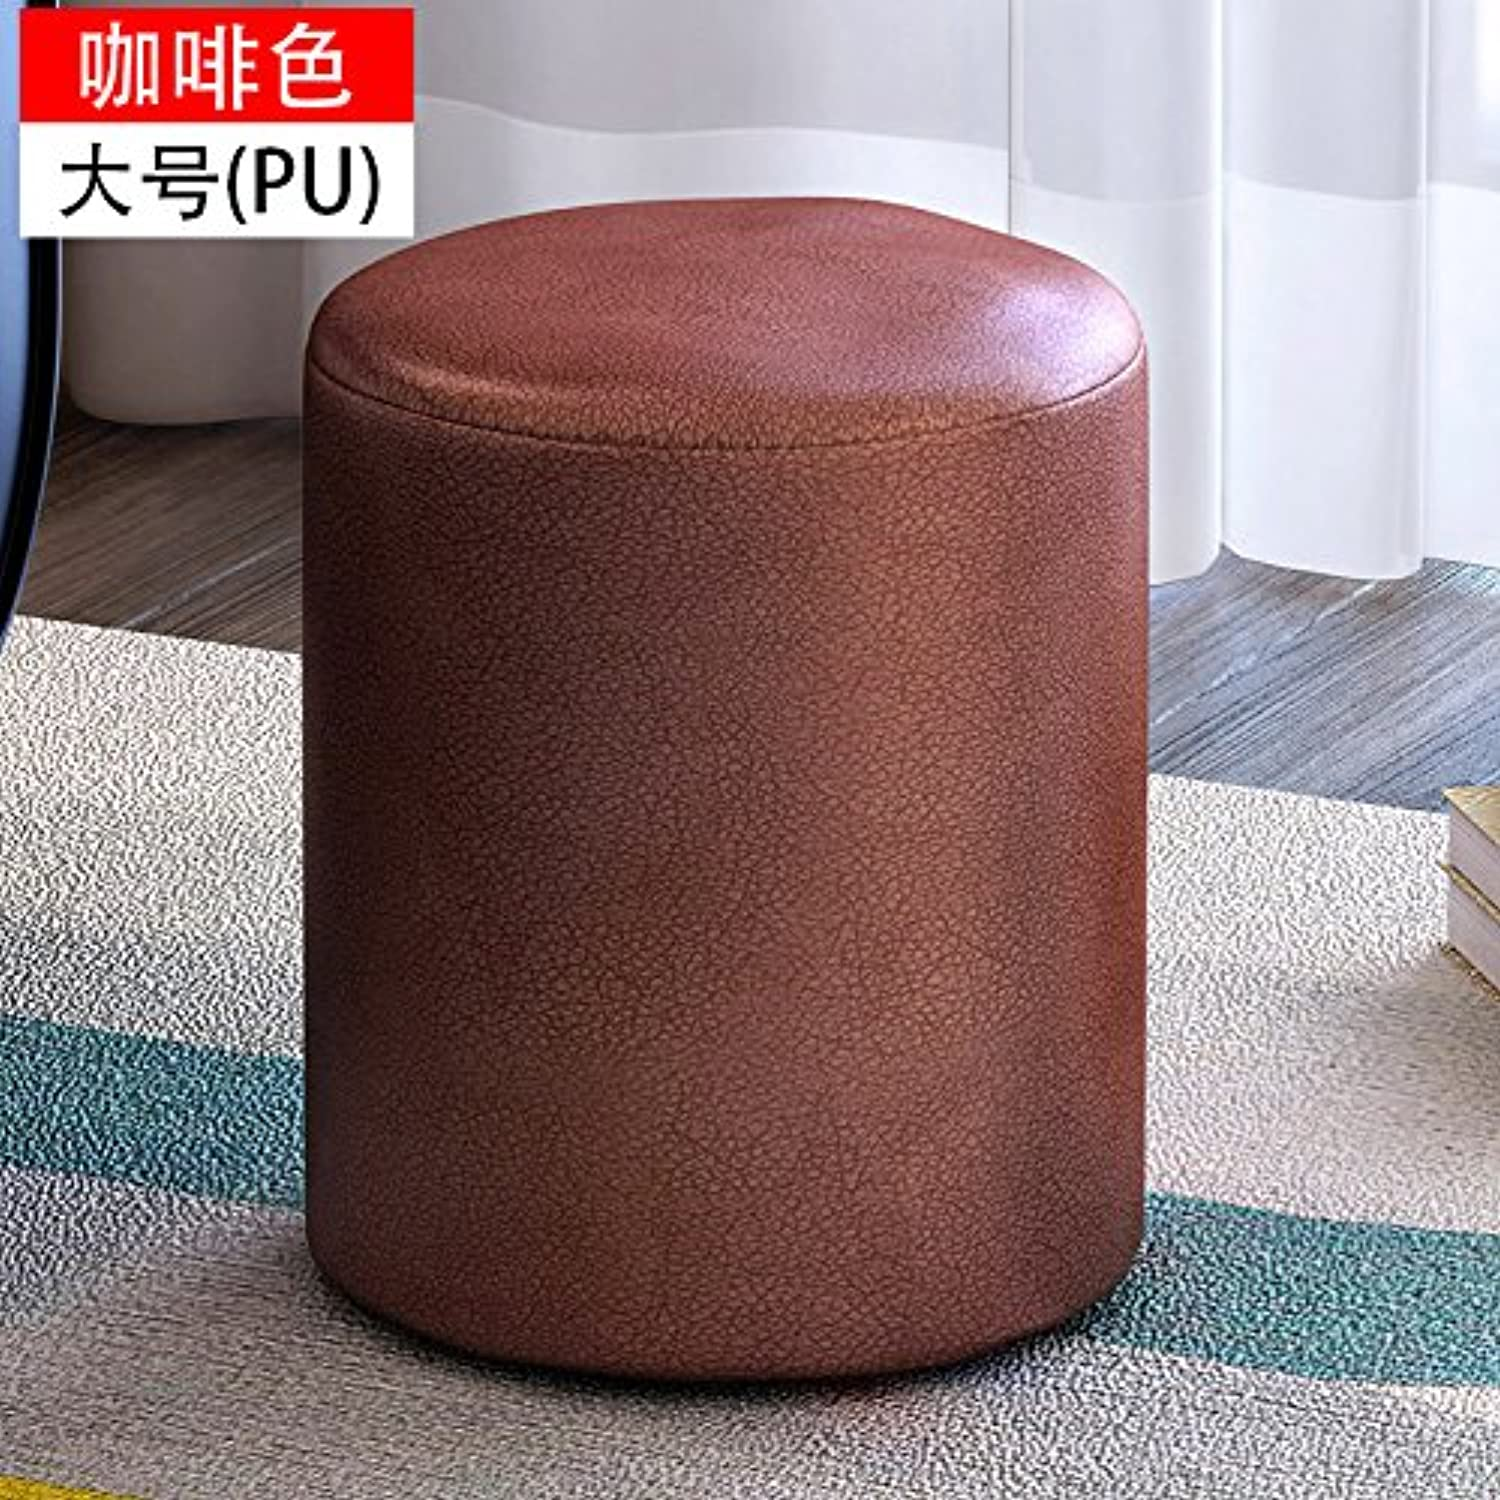 Dana Carrie The shoes is a Stylish Round stool Creative wear shoes of Cloth Sofas stools Benches stool shoes stool Solid Wood on a Low stool, Brown,31  35CM